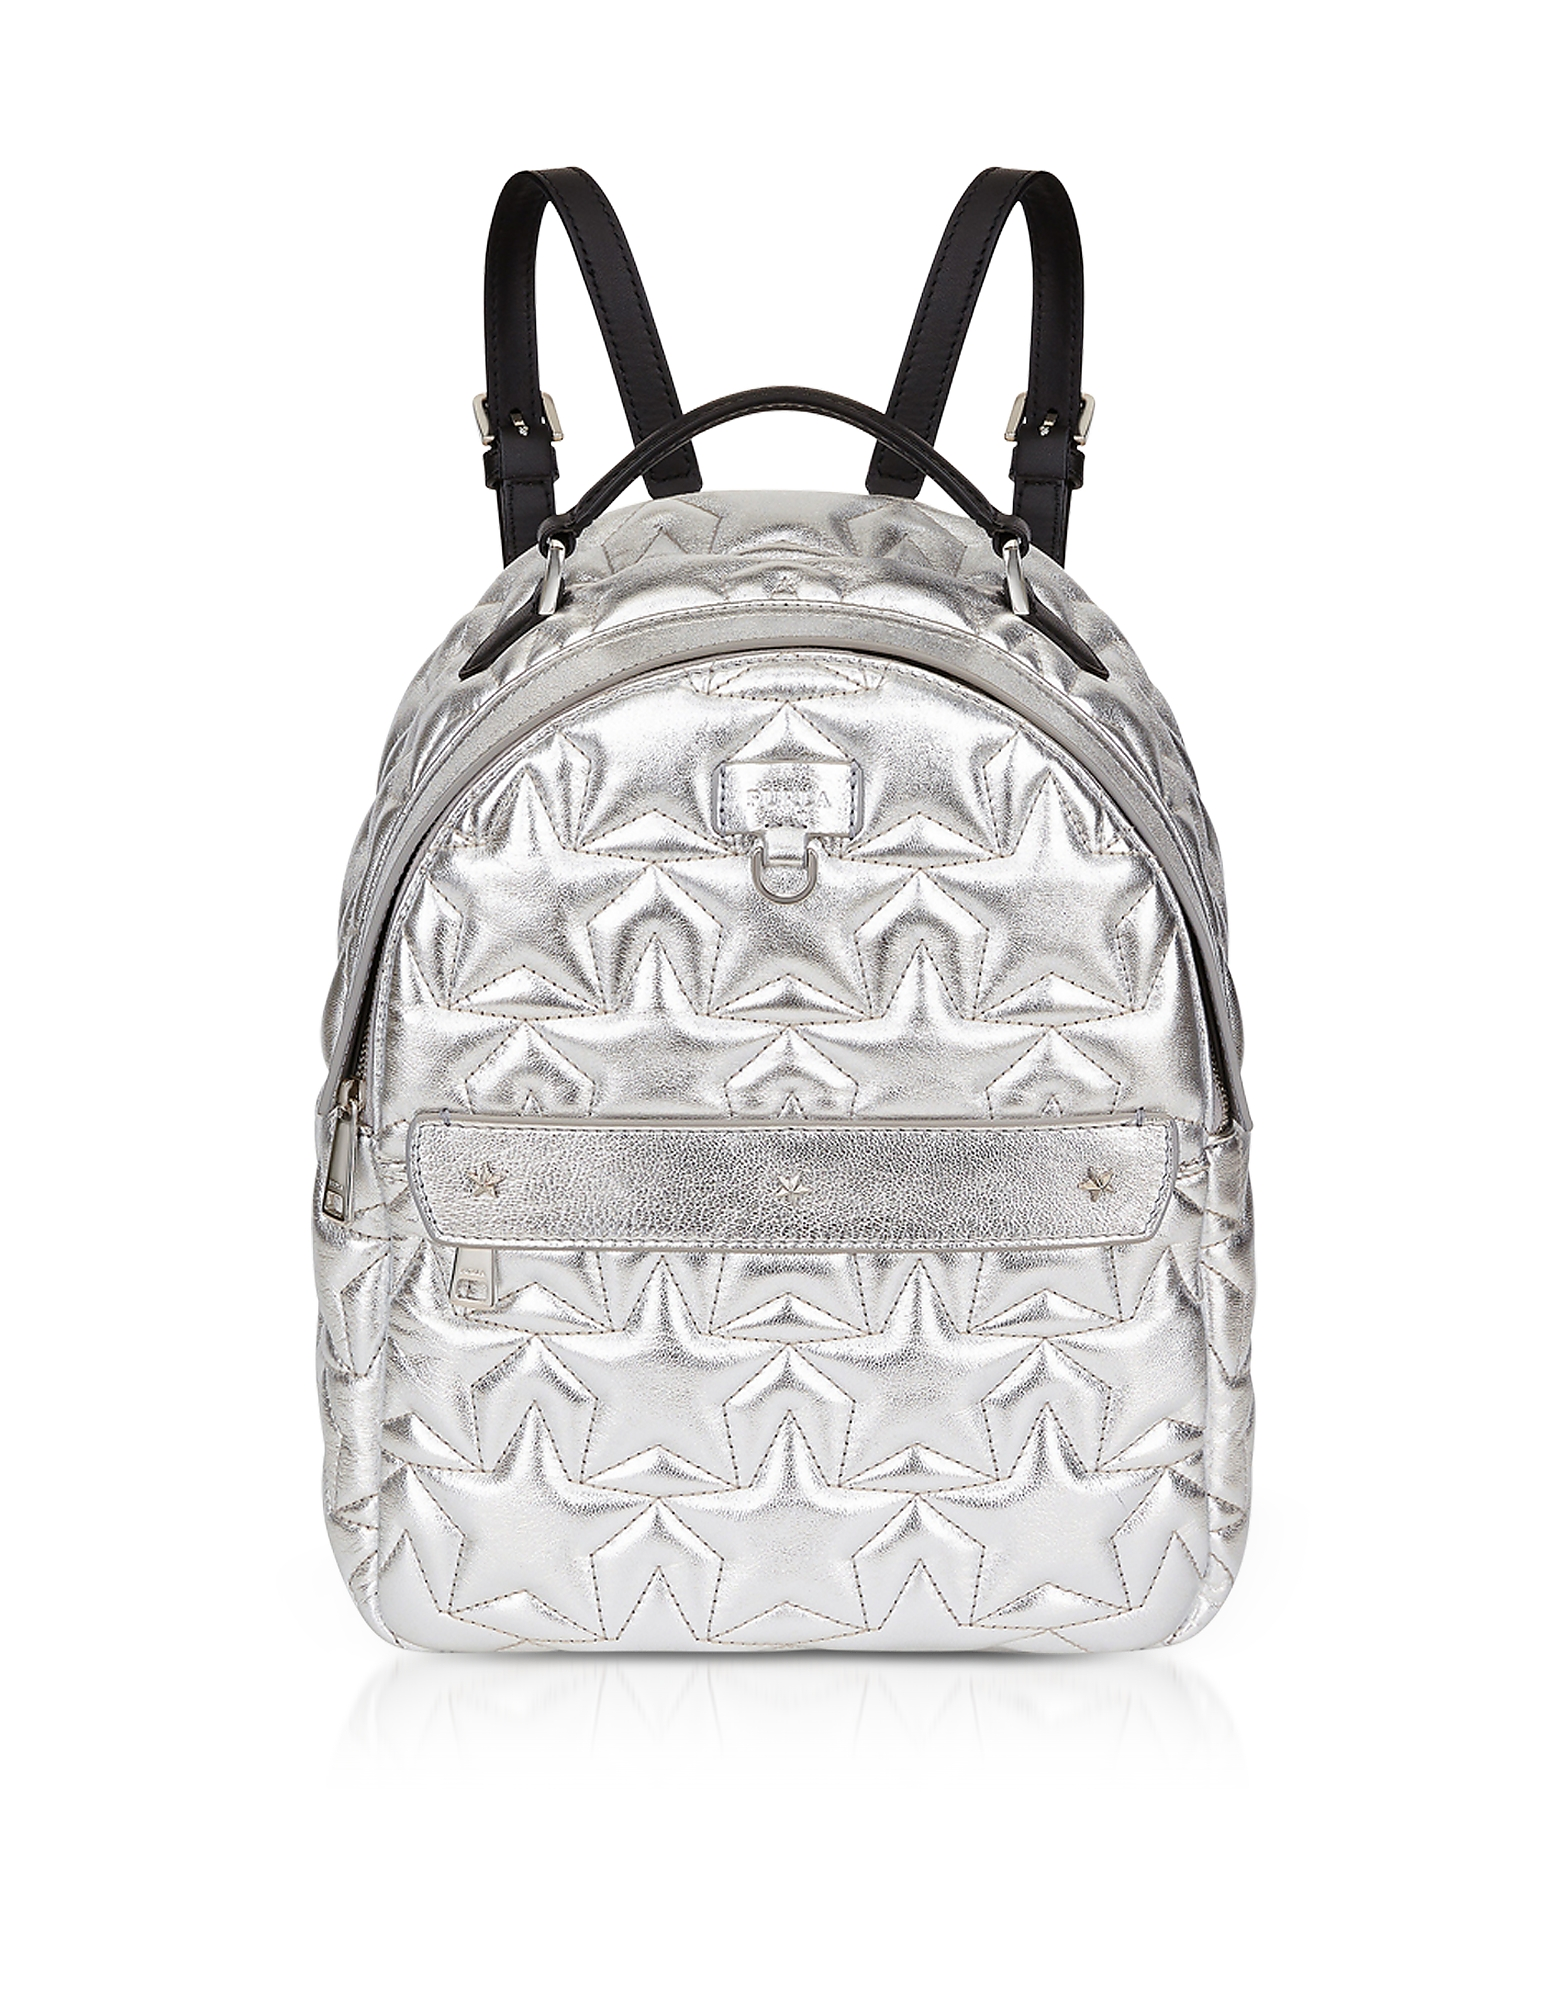 Silver Star Quilted Leather Favola Small Backpack